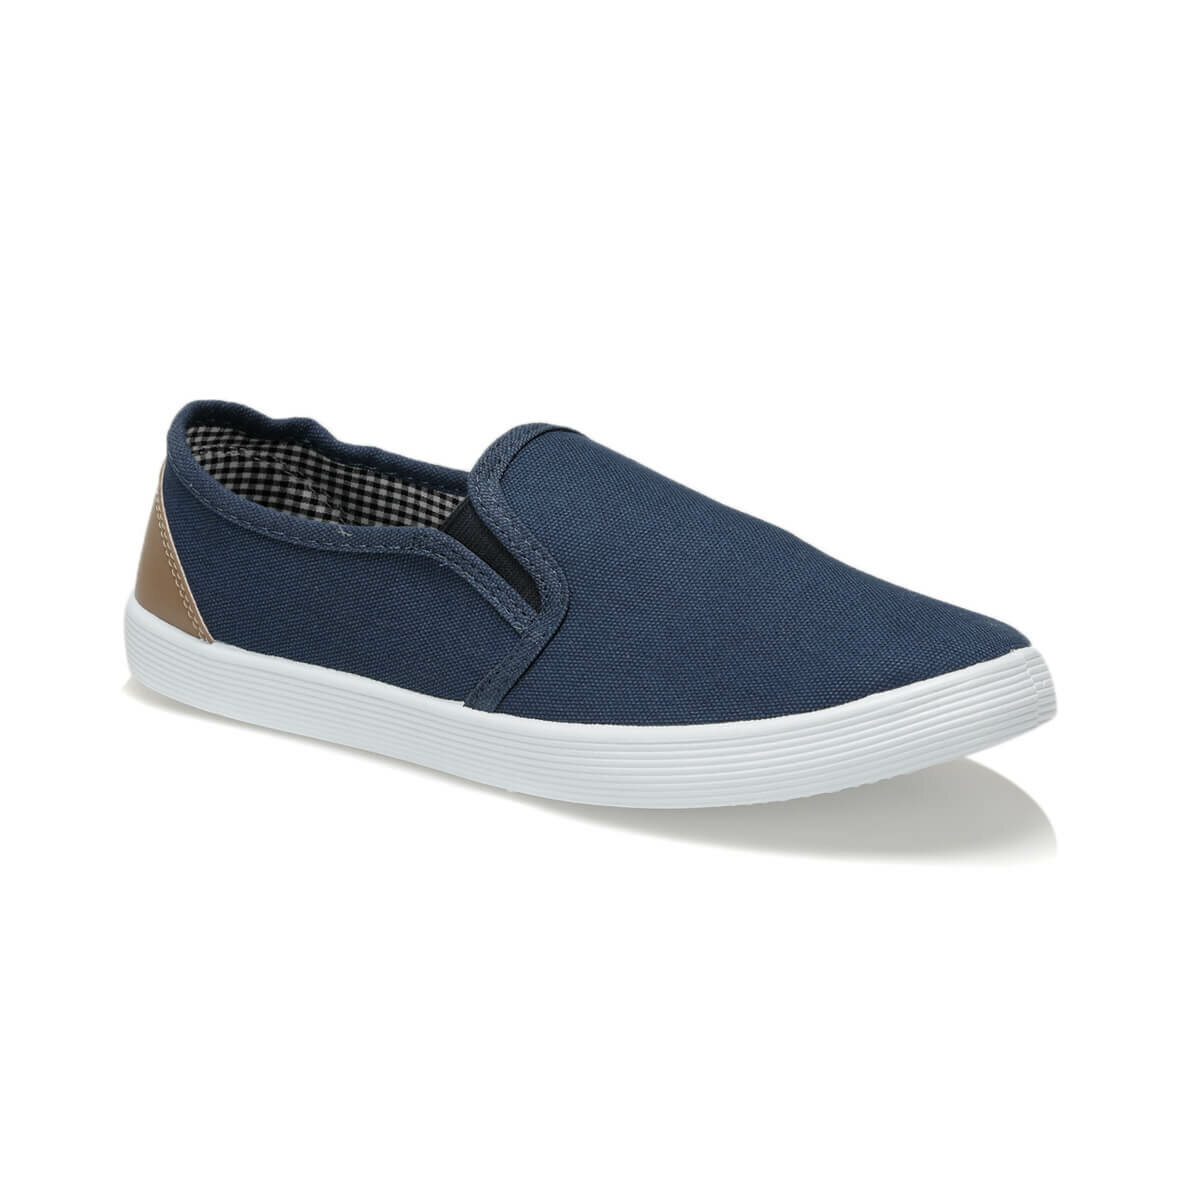 FLO 91. 353984.M Navy Blue Men 'S Slip On Shoes Polaris